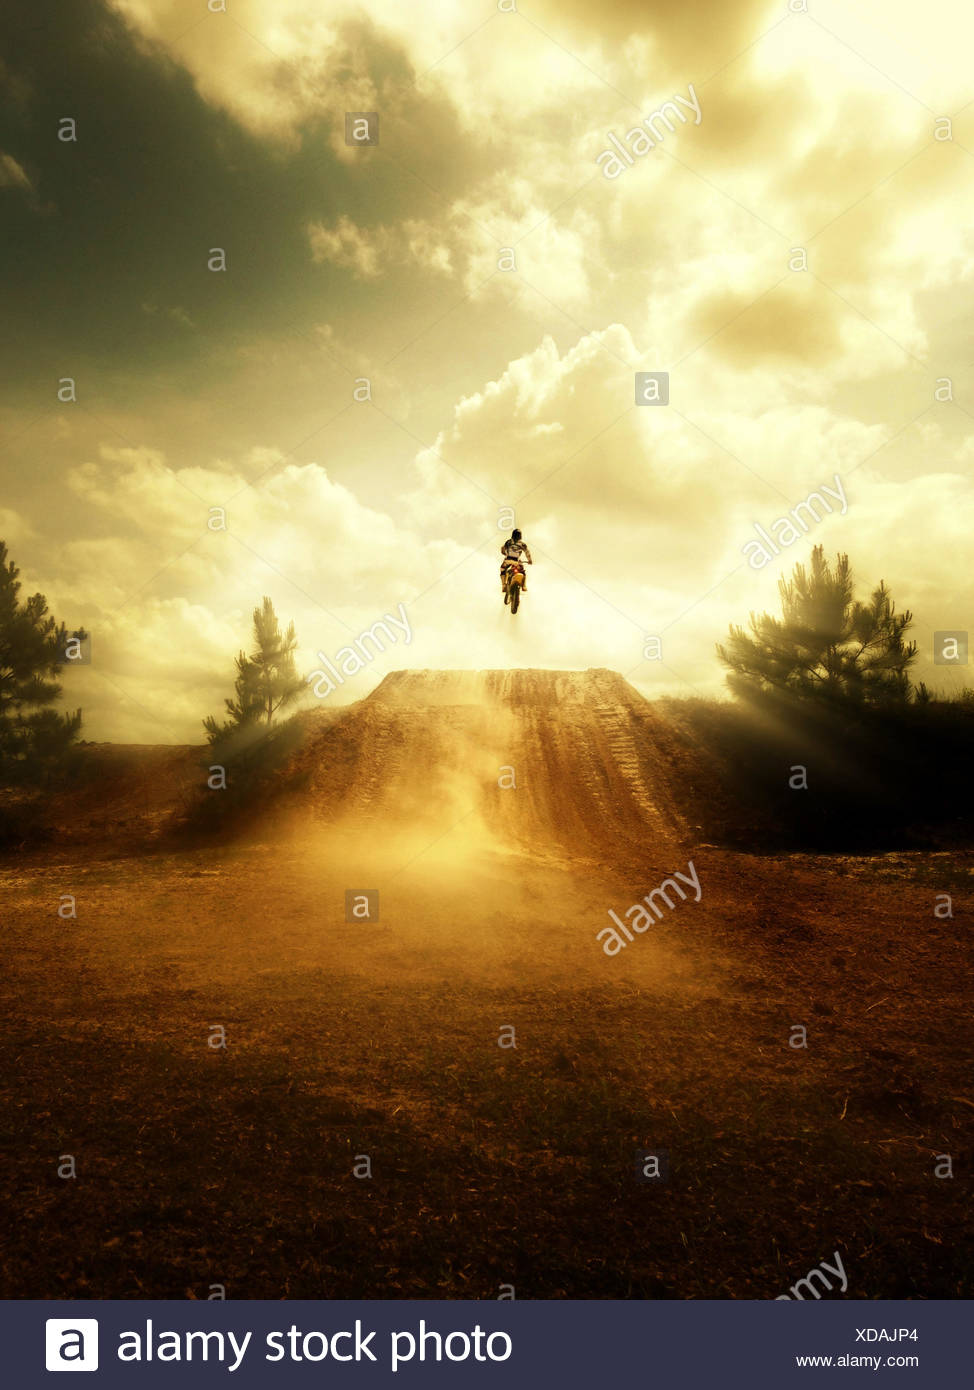 USA, Florida, Clay County, Green Cove Springs, Person jumping on motorcycle - Stock Image